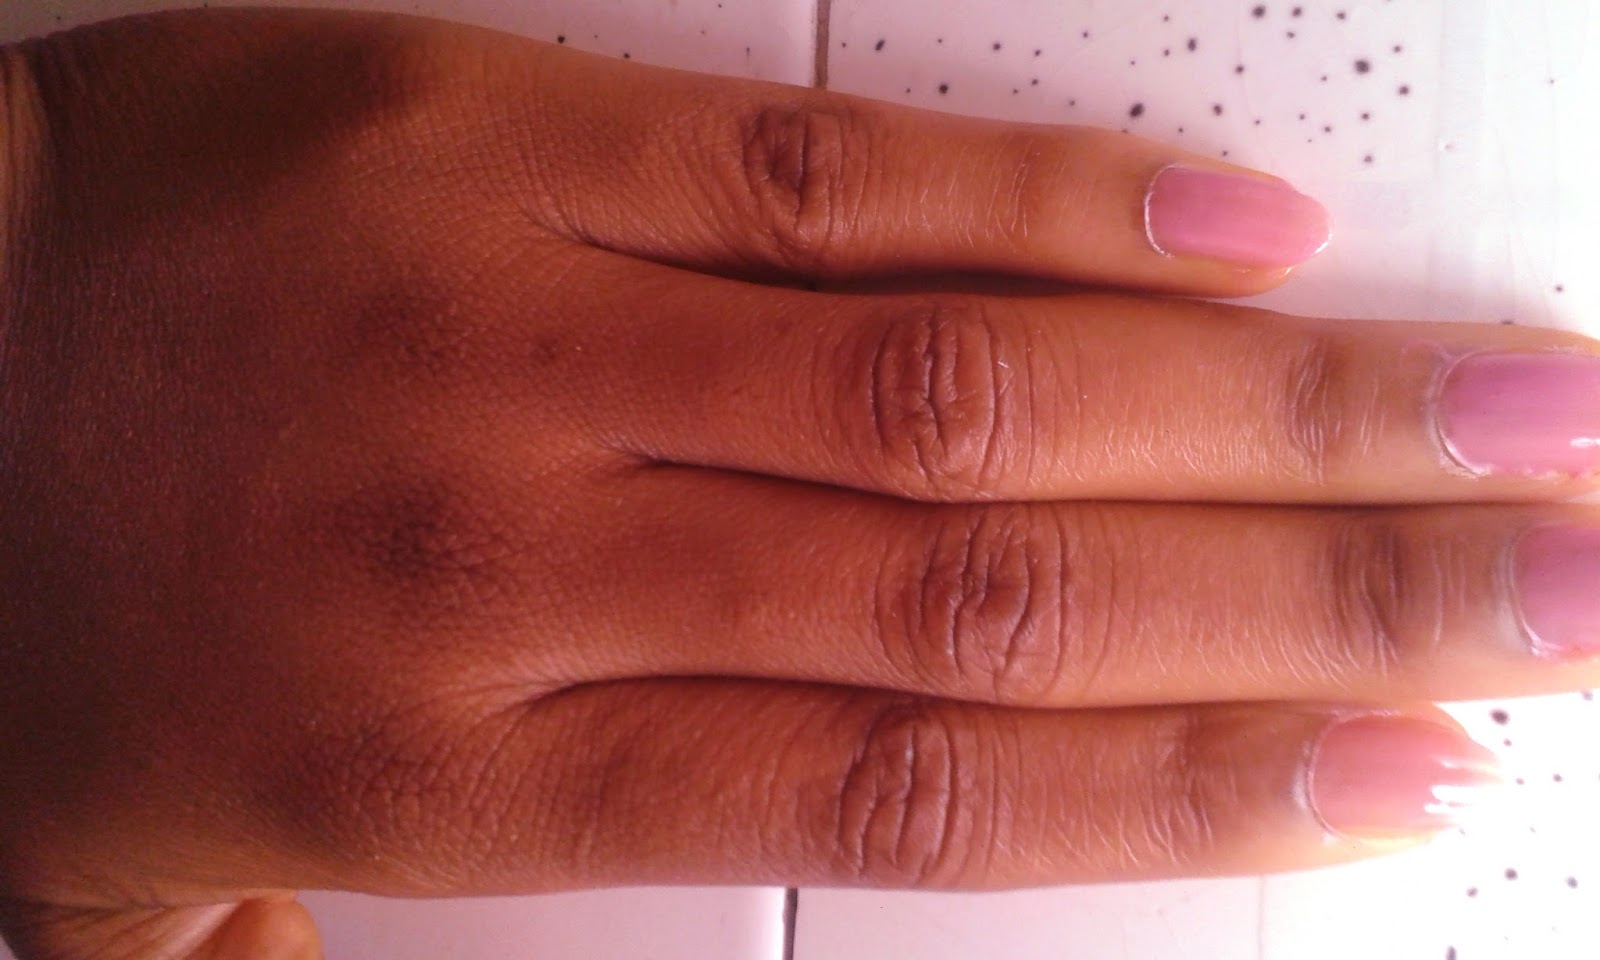 Dark Knuckles Is Perceived As One Of The Evidence Bleaching It Can Be Really Embarrassing For A Lady Imagine Visiting An Expensive Spa To Get New